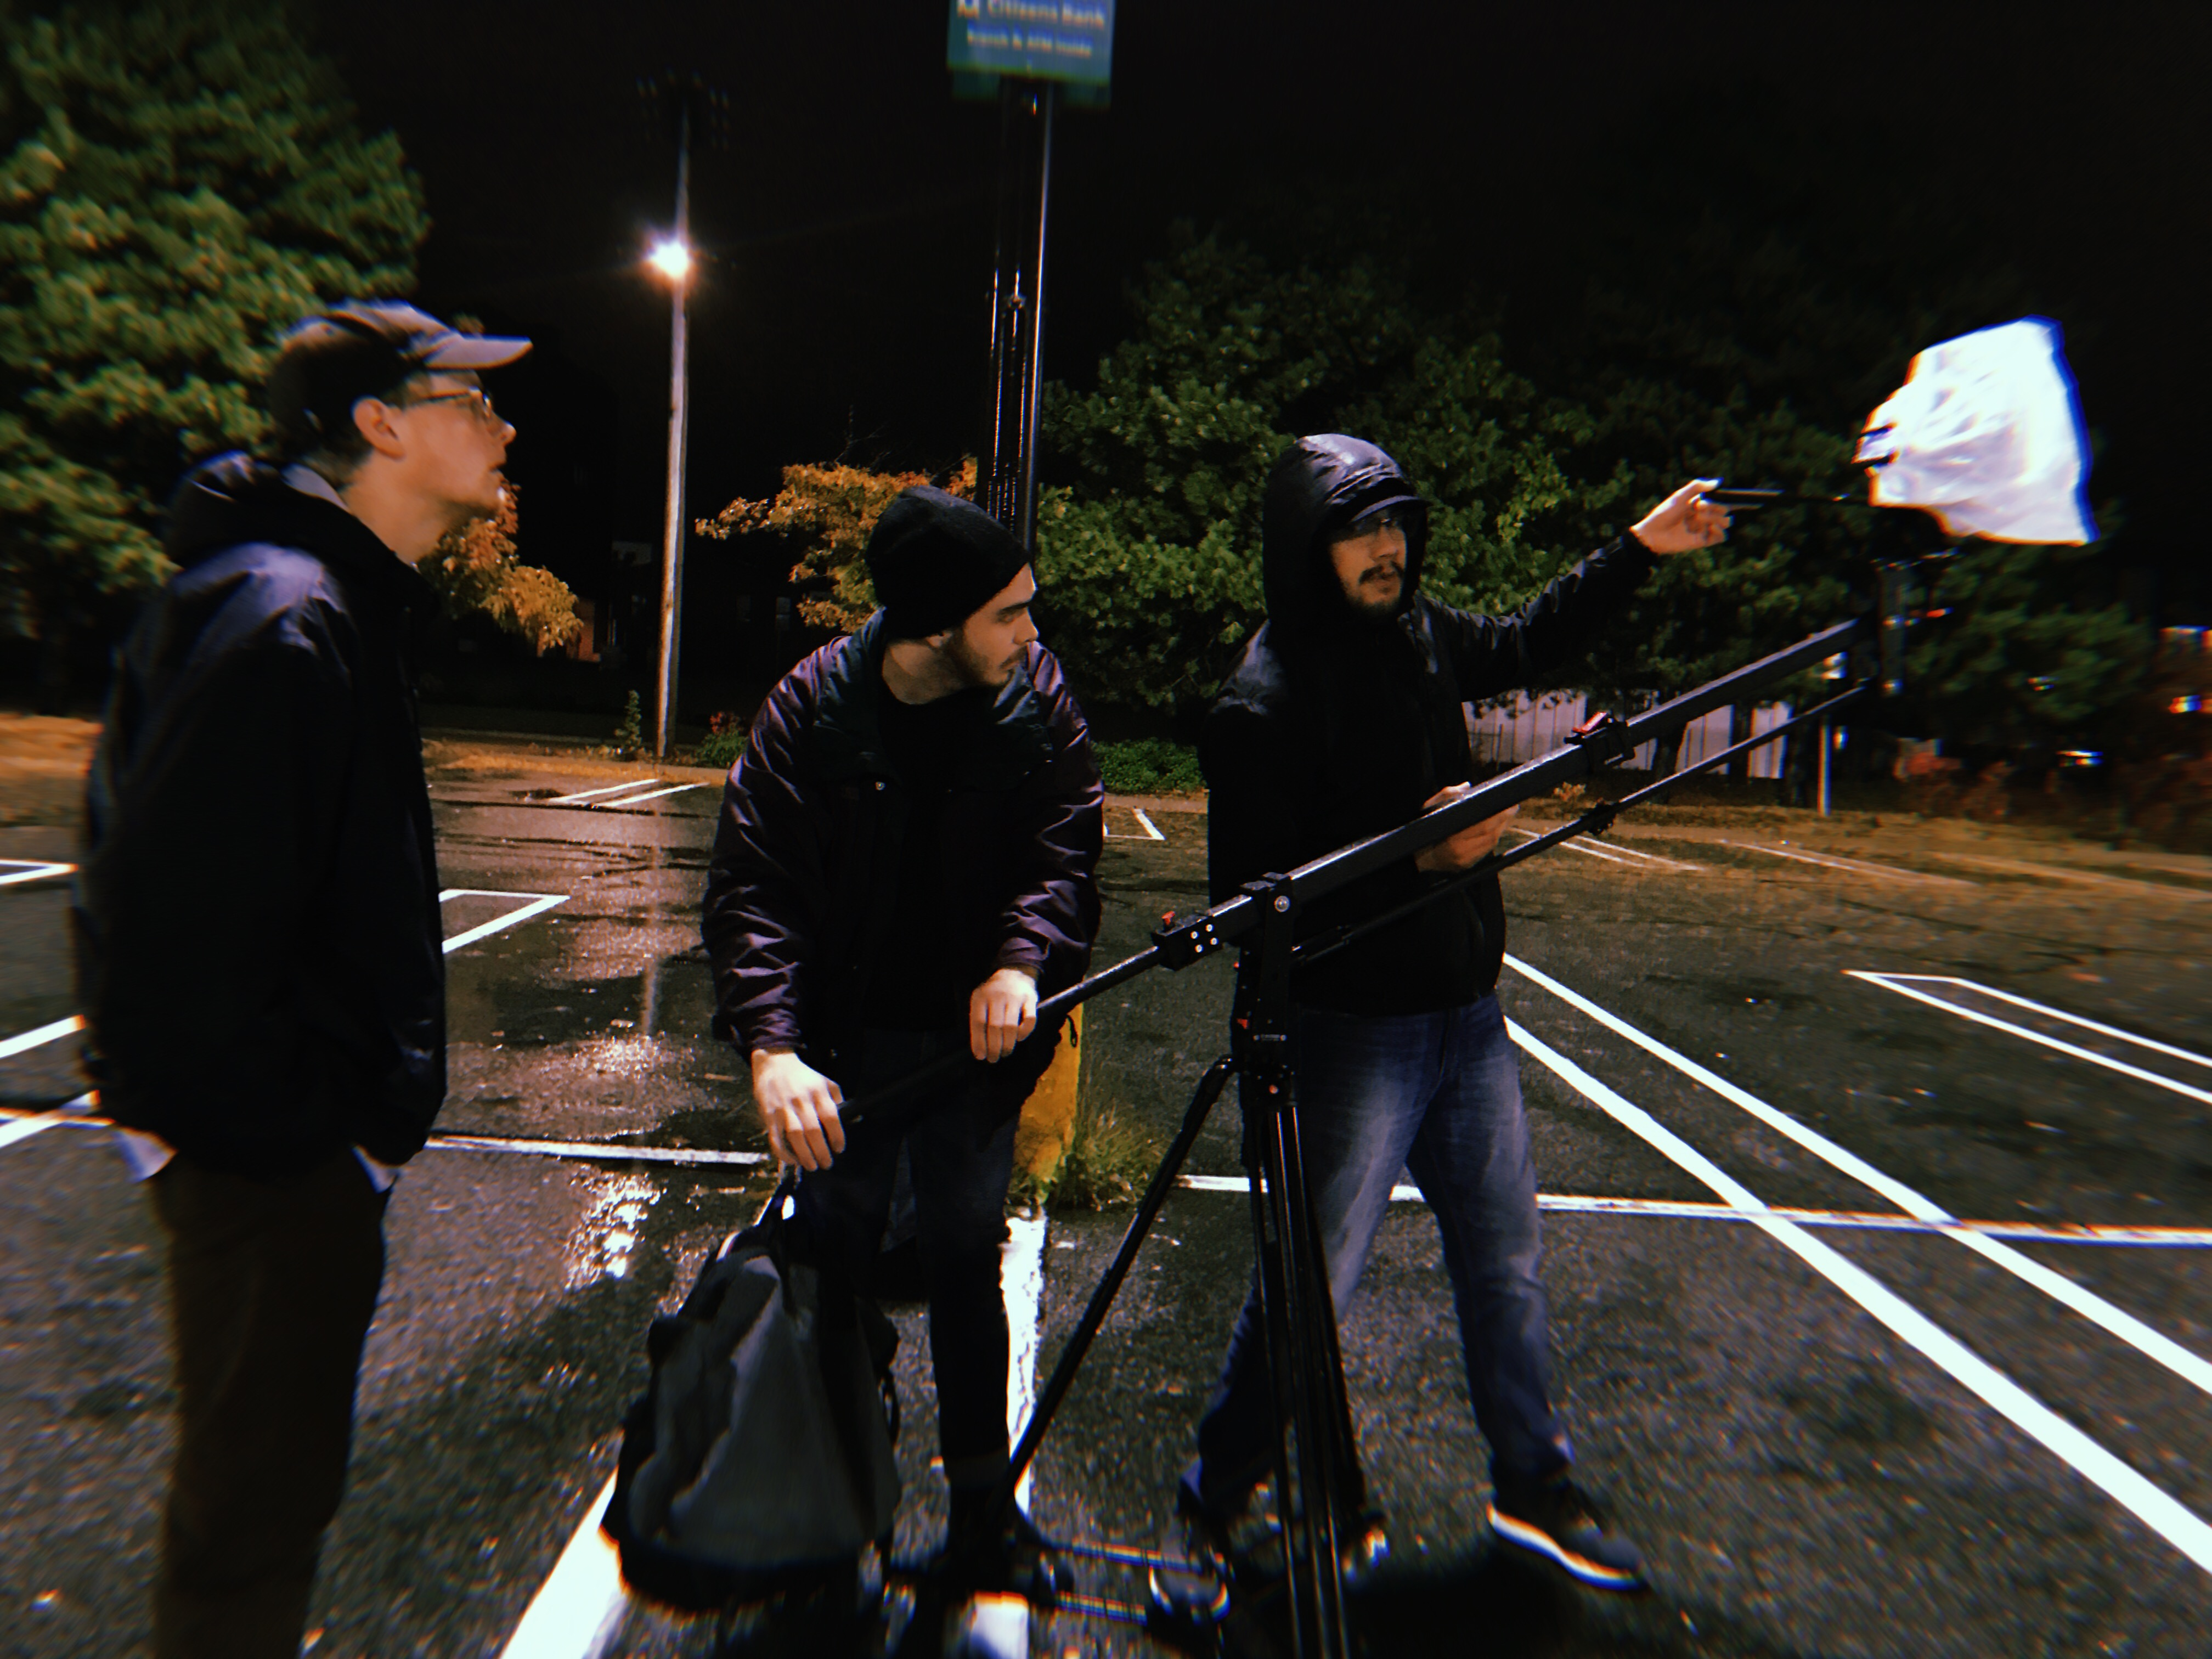 three film students set up a camera to record in an empty parking lot at night in the rain